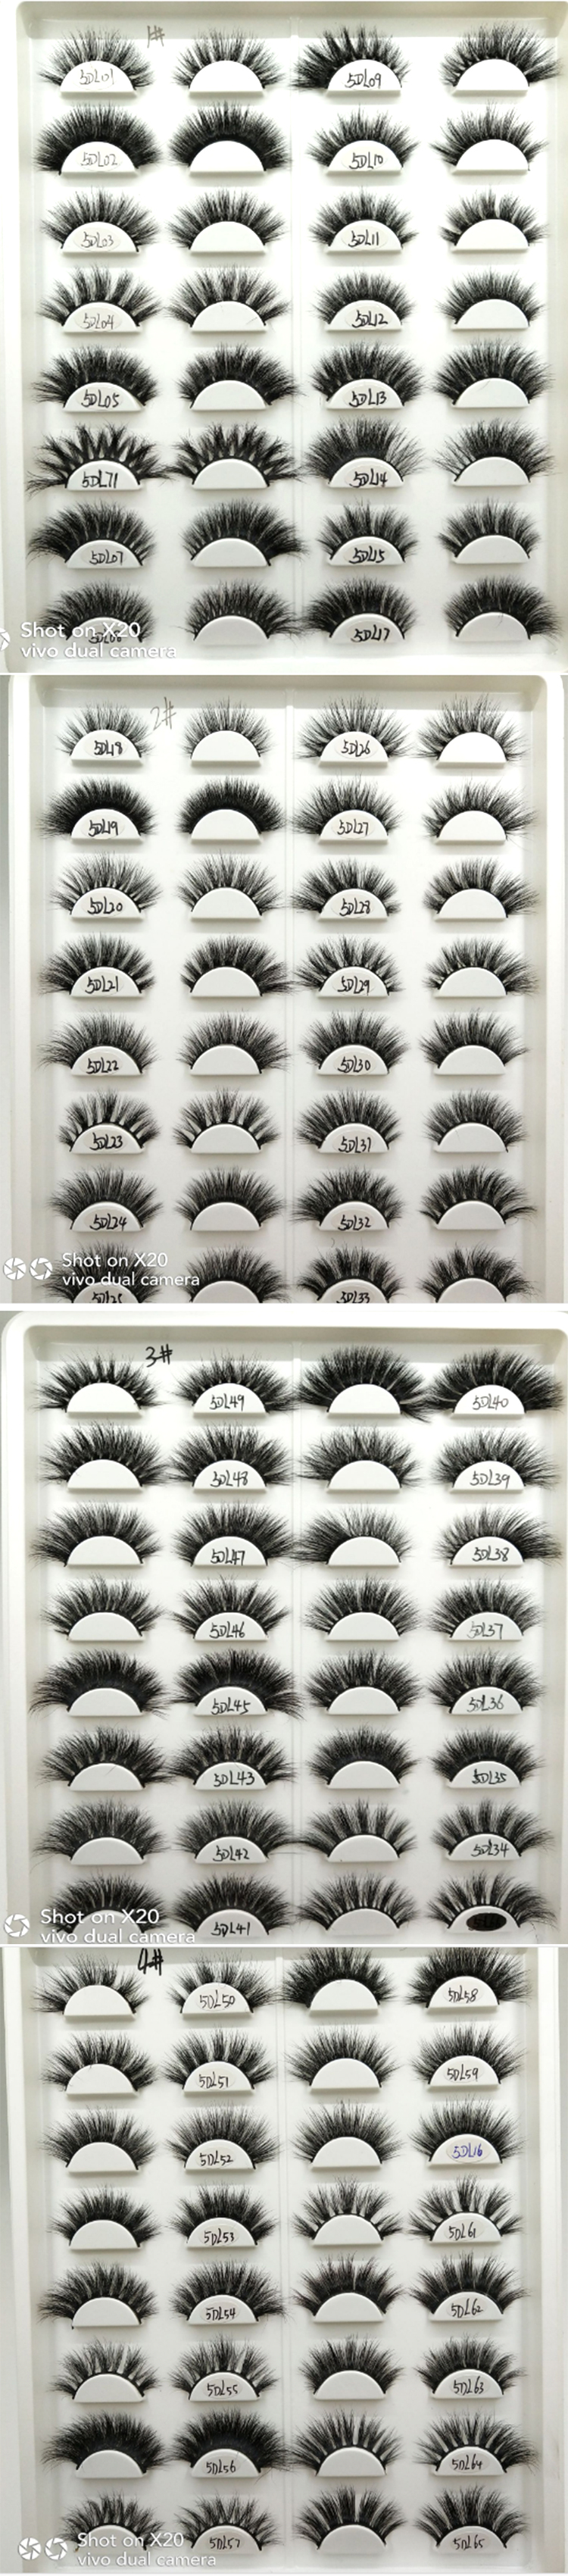 hundreds styles of luxury 5d mink lashes wholesale supplies China.jpg